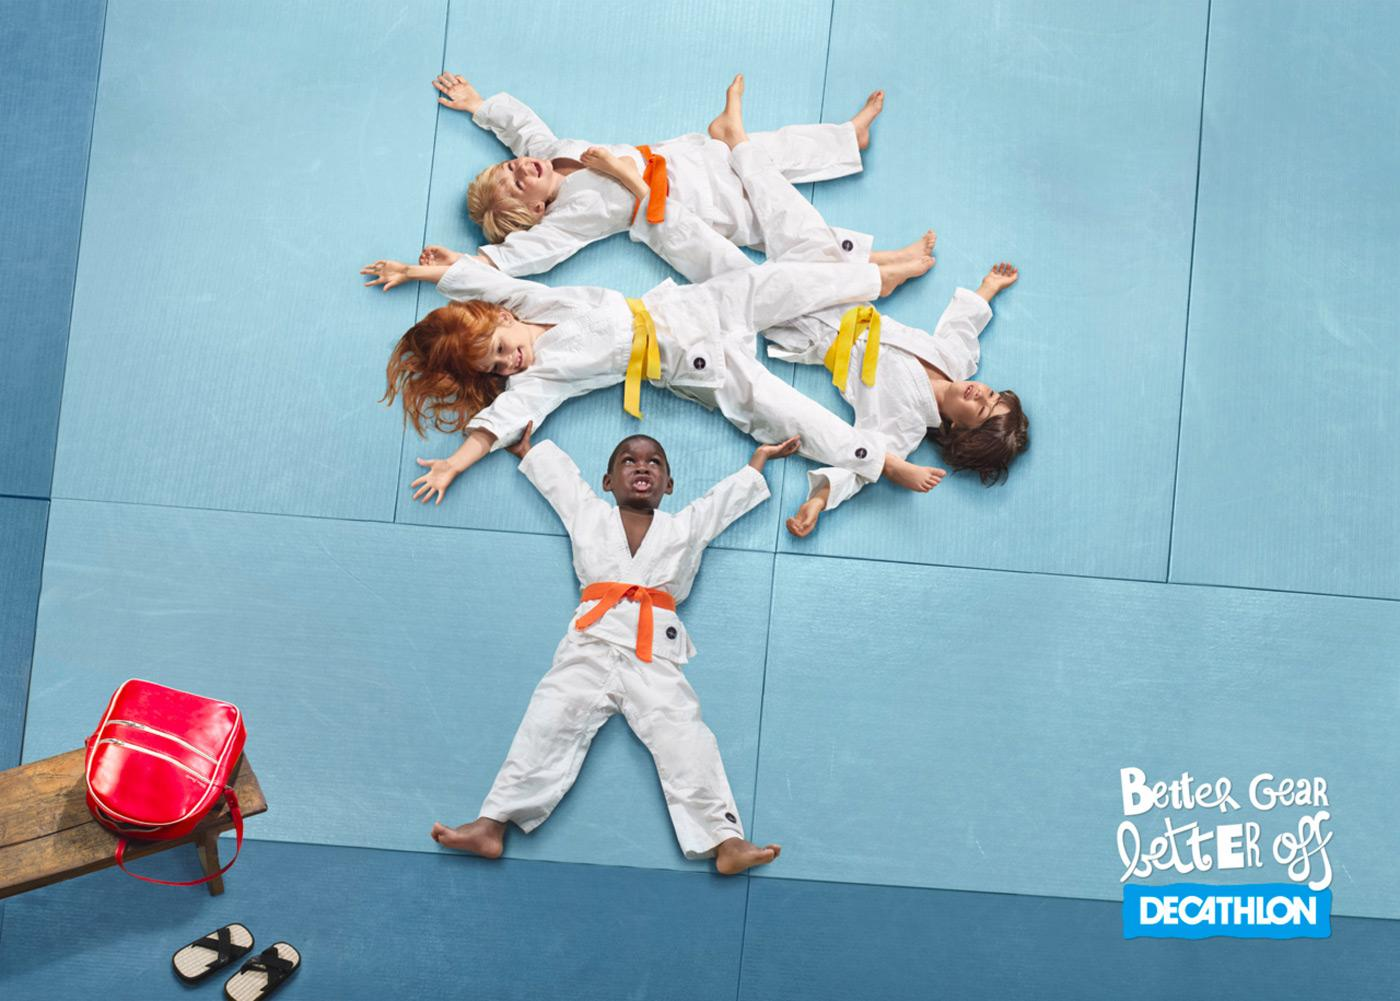 Decathlon Print Ad -  Better gear, 2